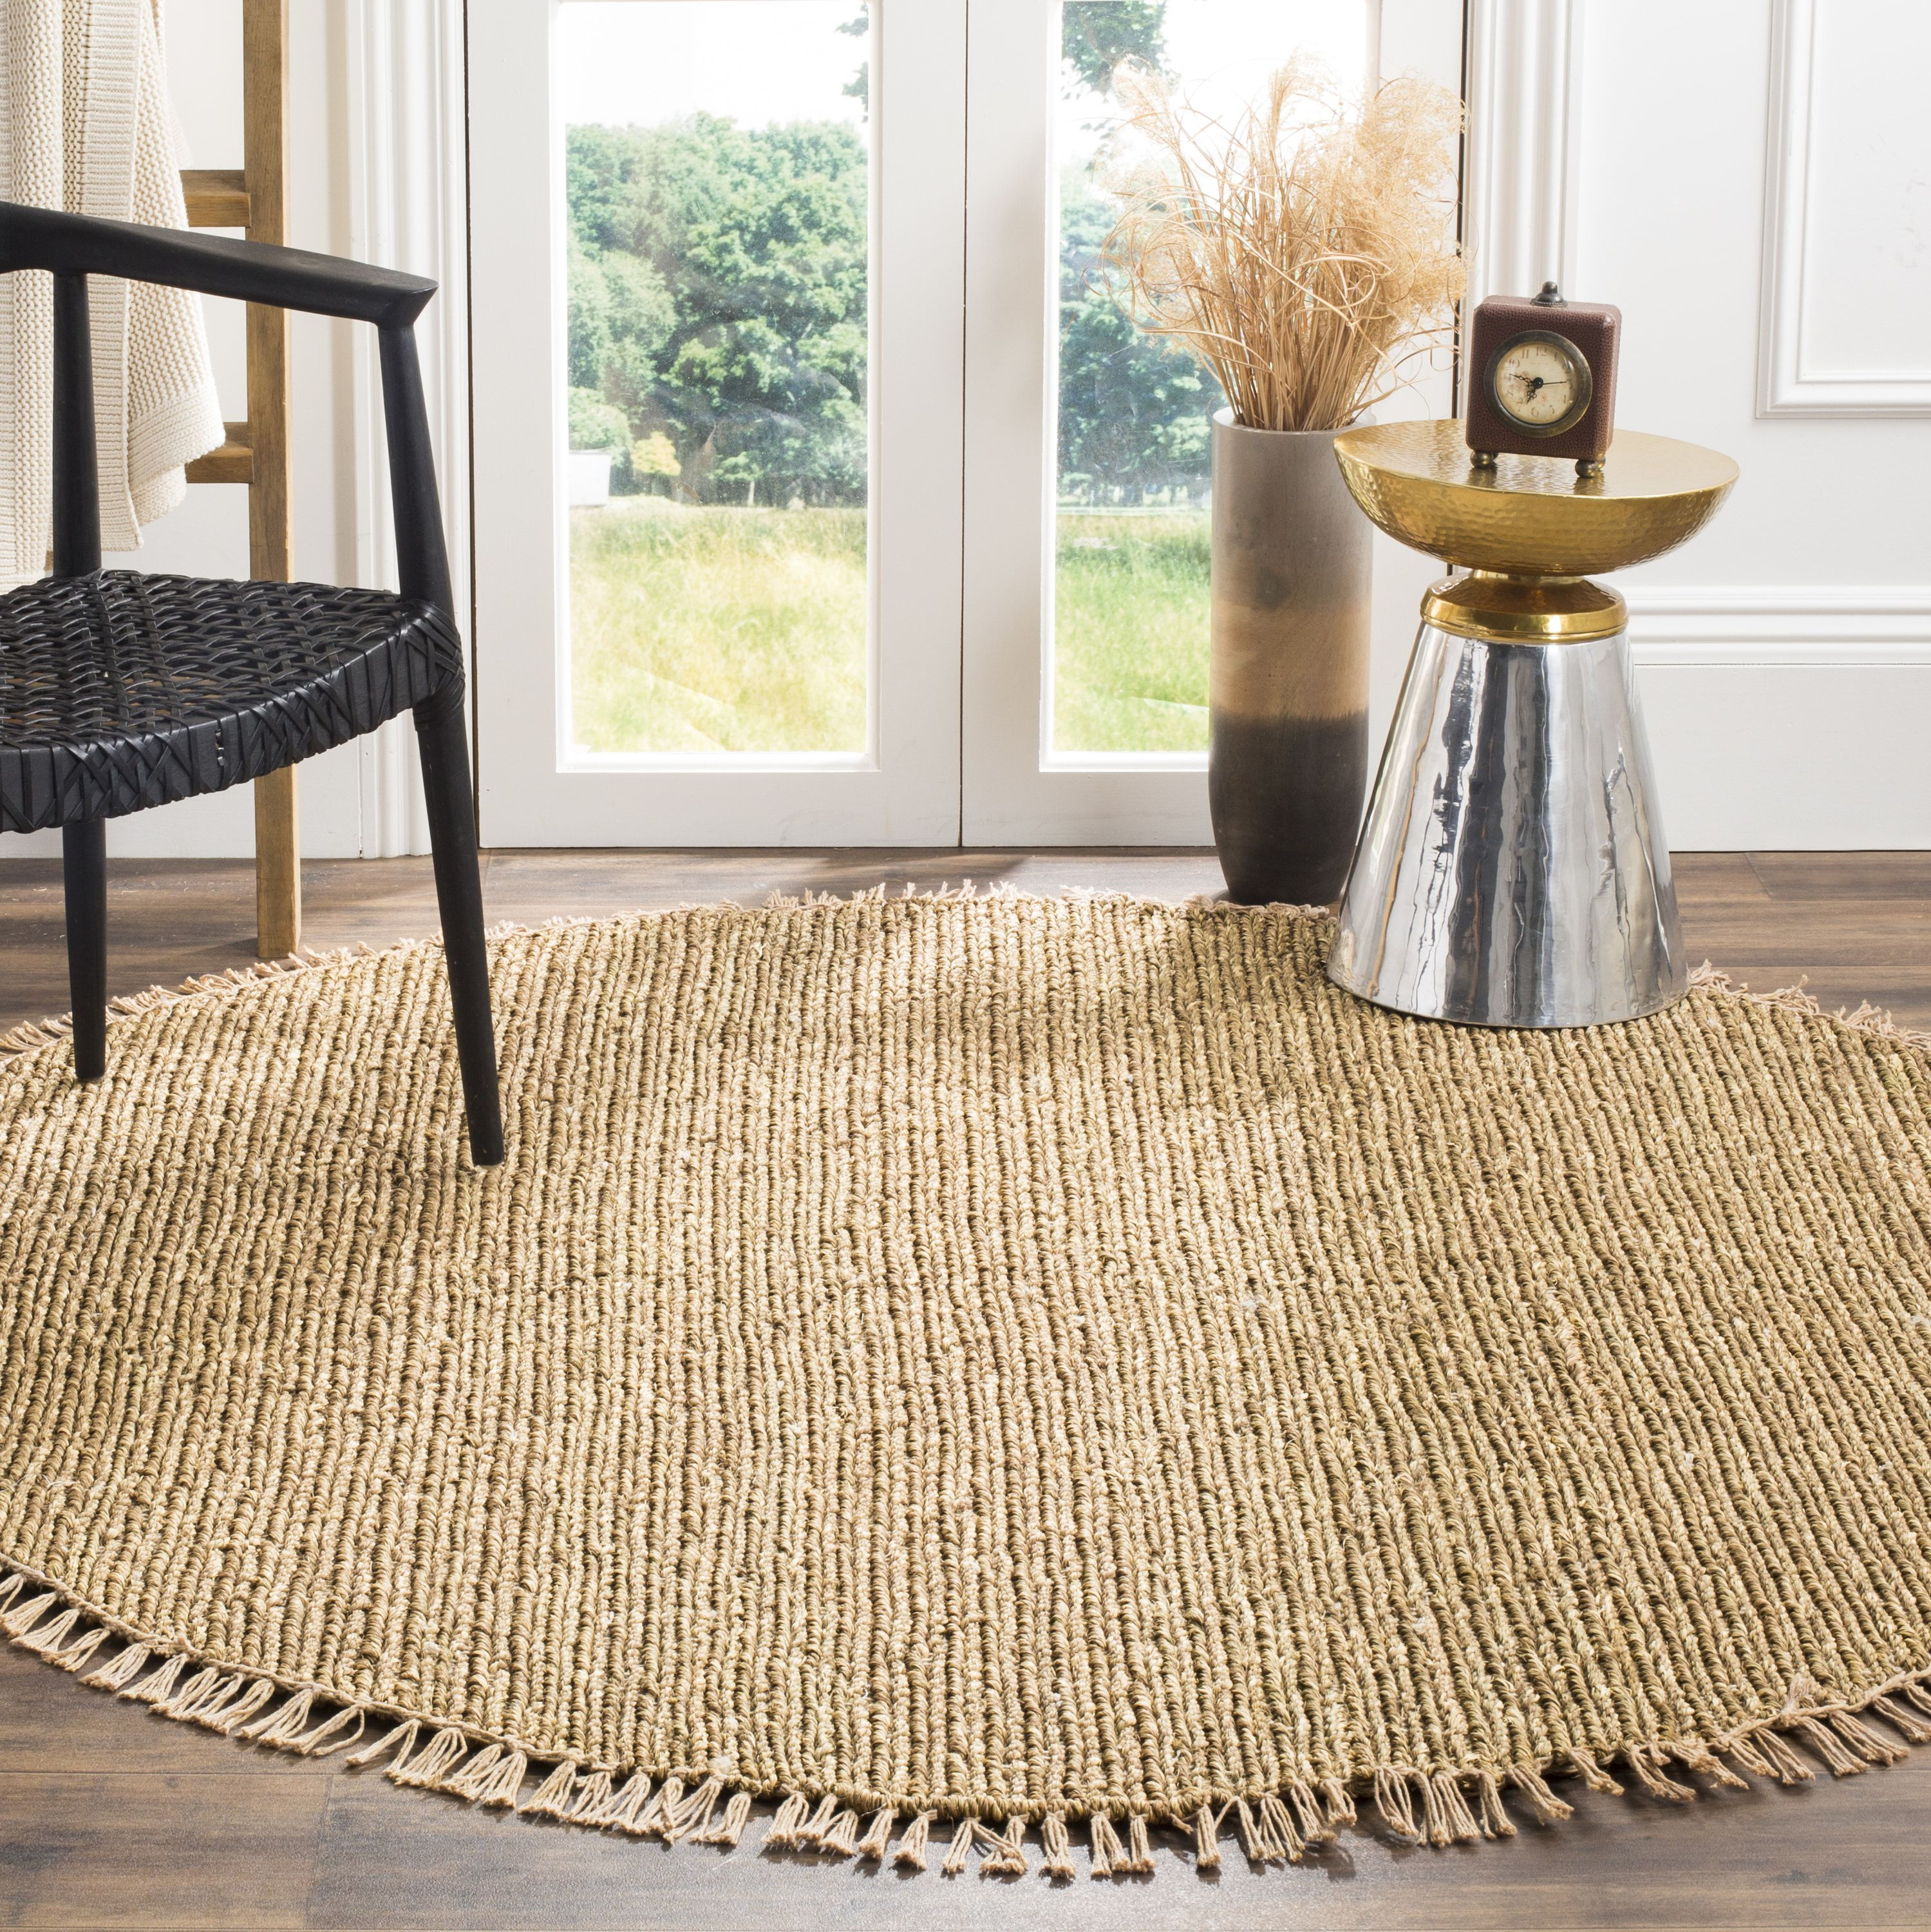 Nf510a Color Natural Size 2 3 X 10 Natural Rug Braided Area Rugs Round Area Rugs